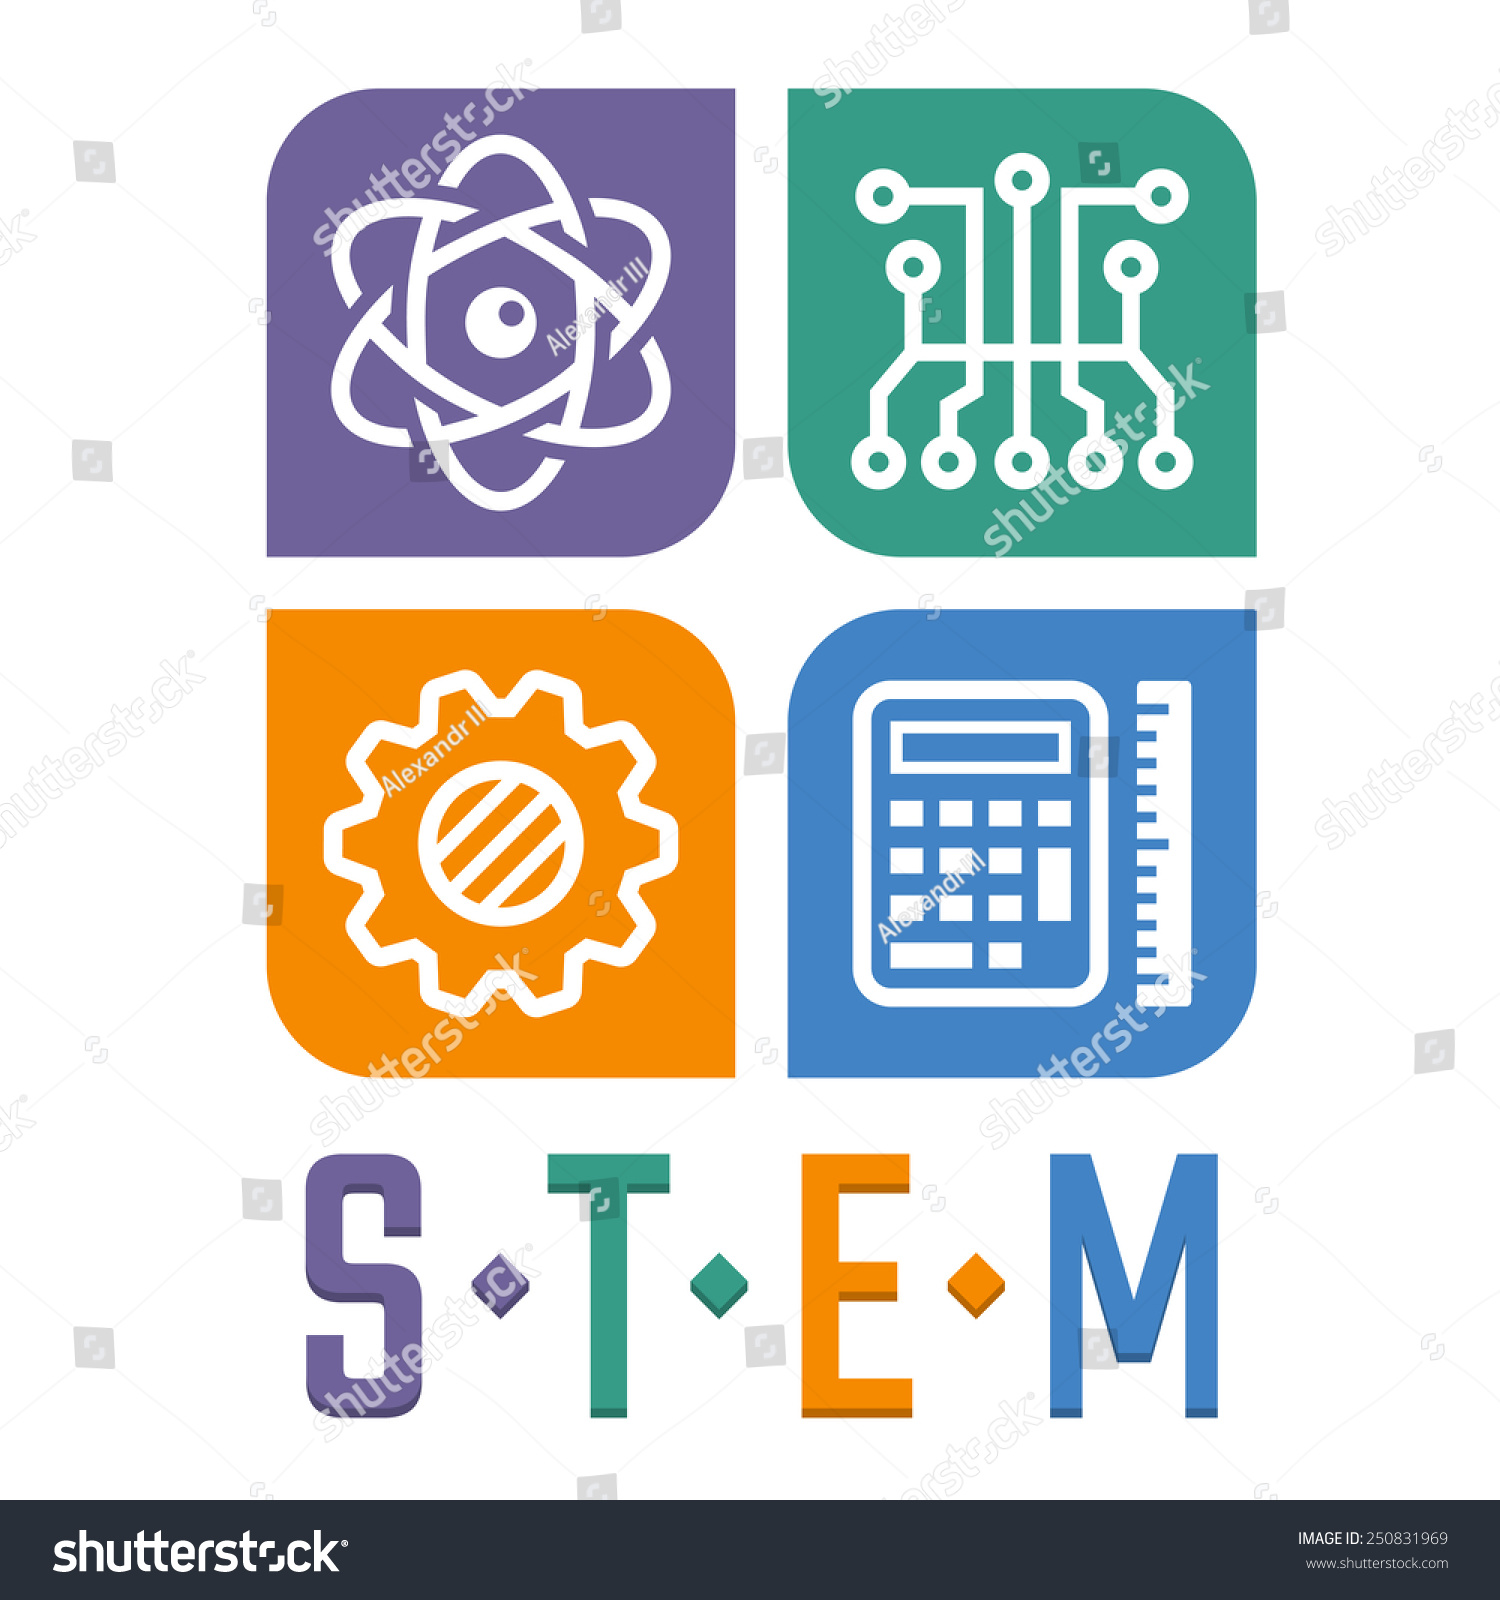 Science Technology Engineering Math: Vector Illustration Science Technology Engineering Math